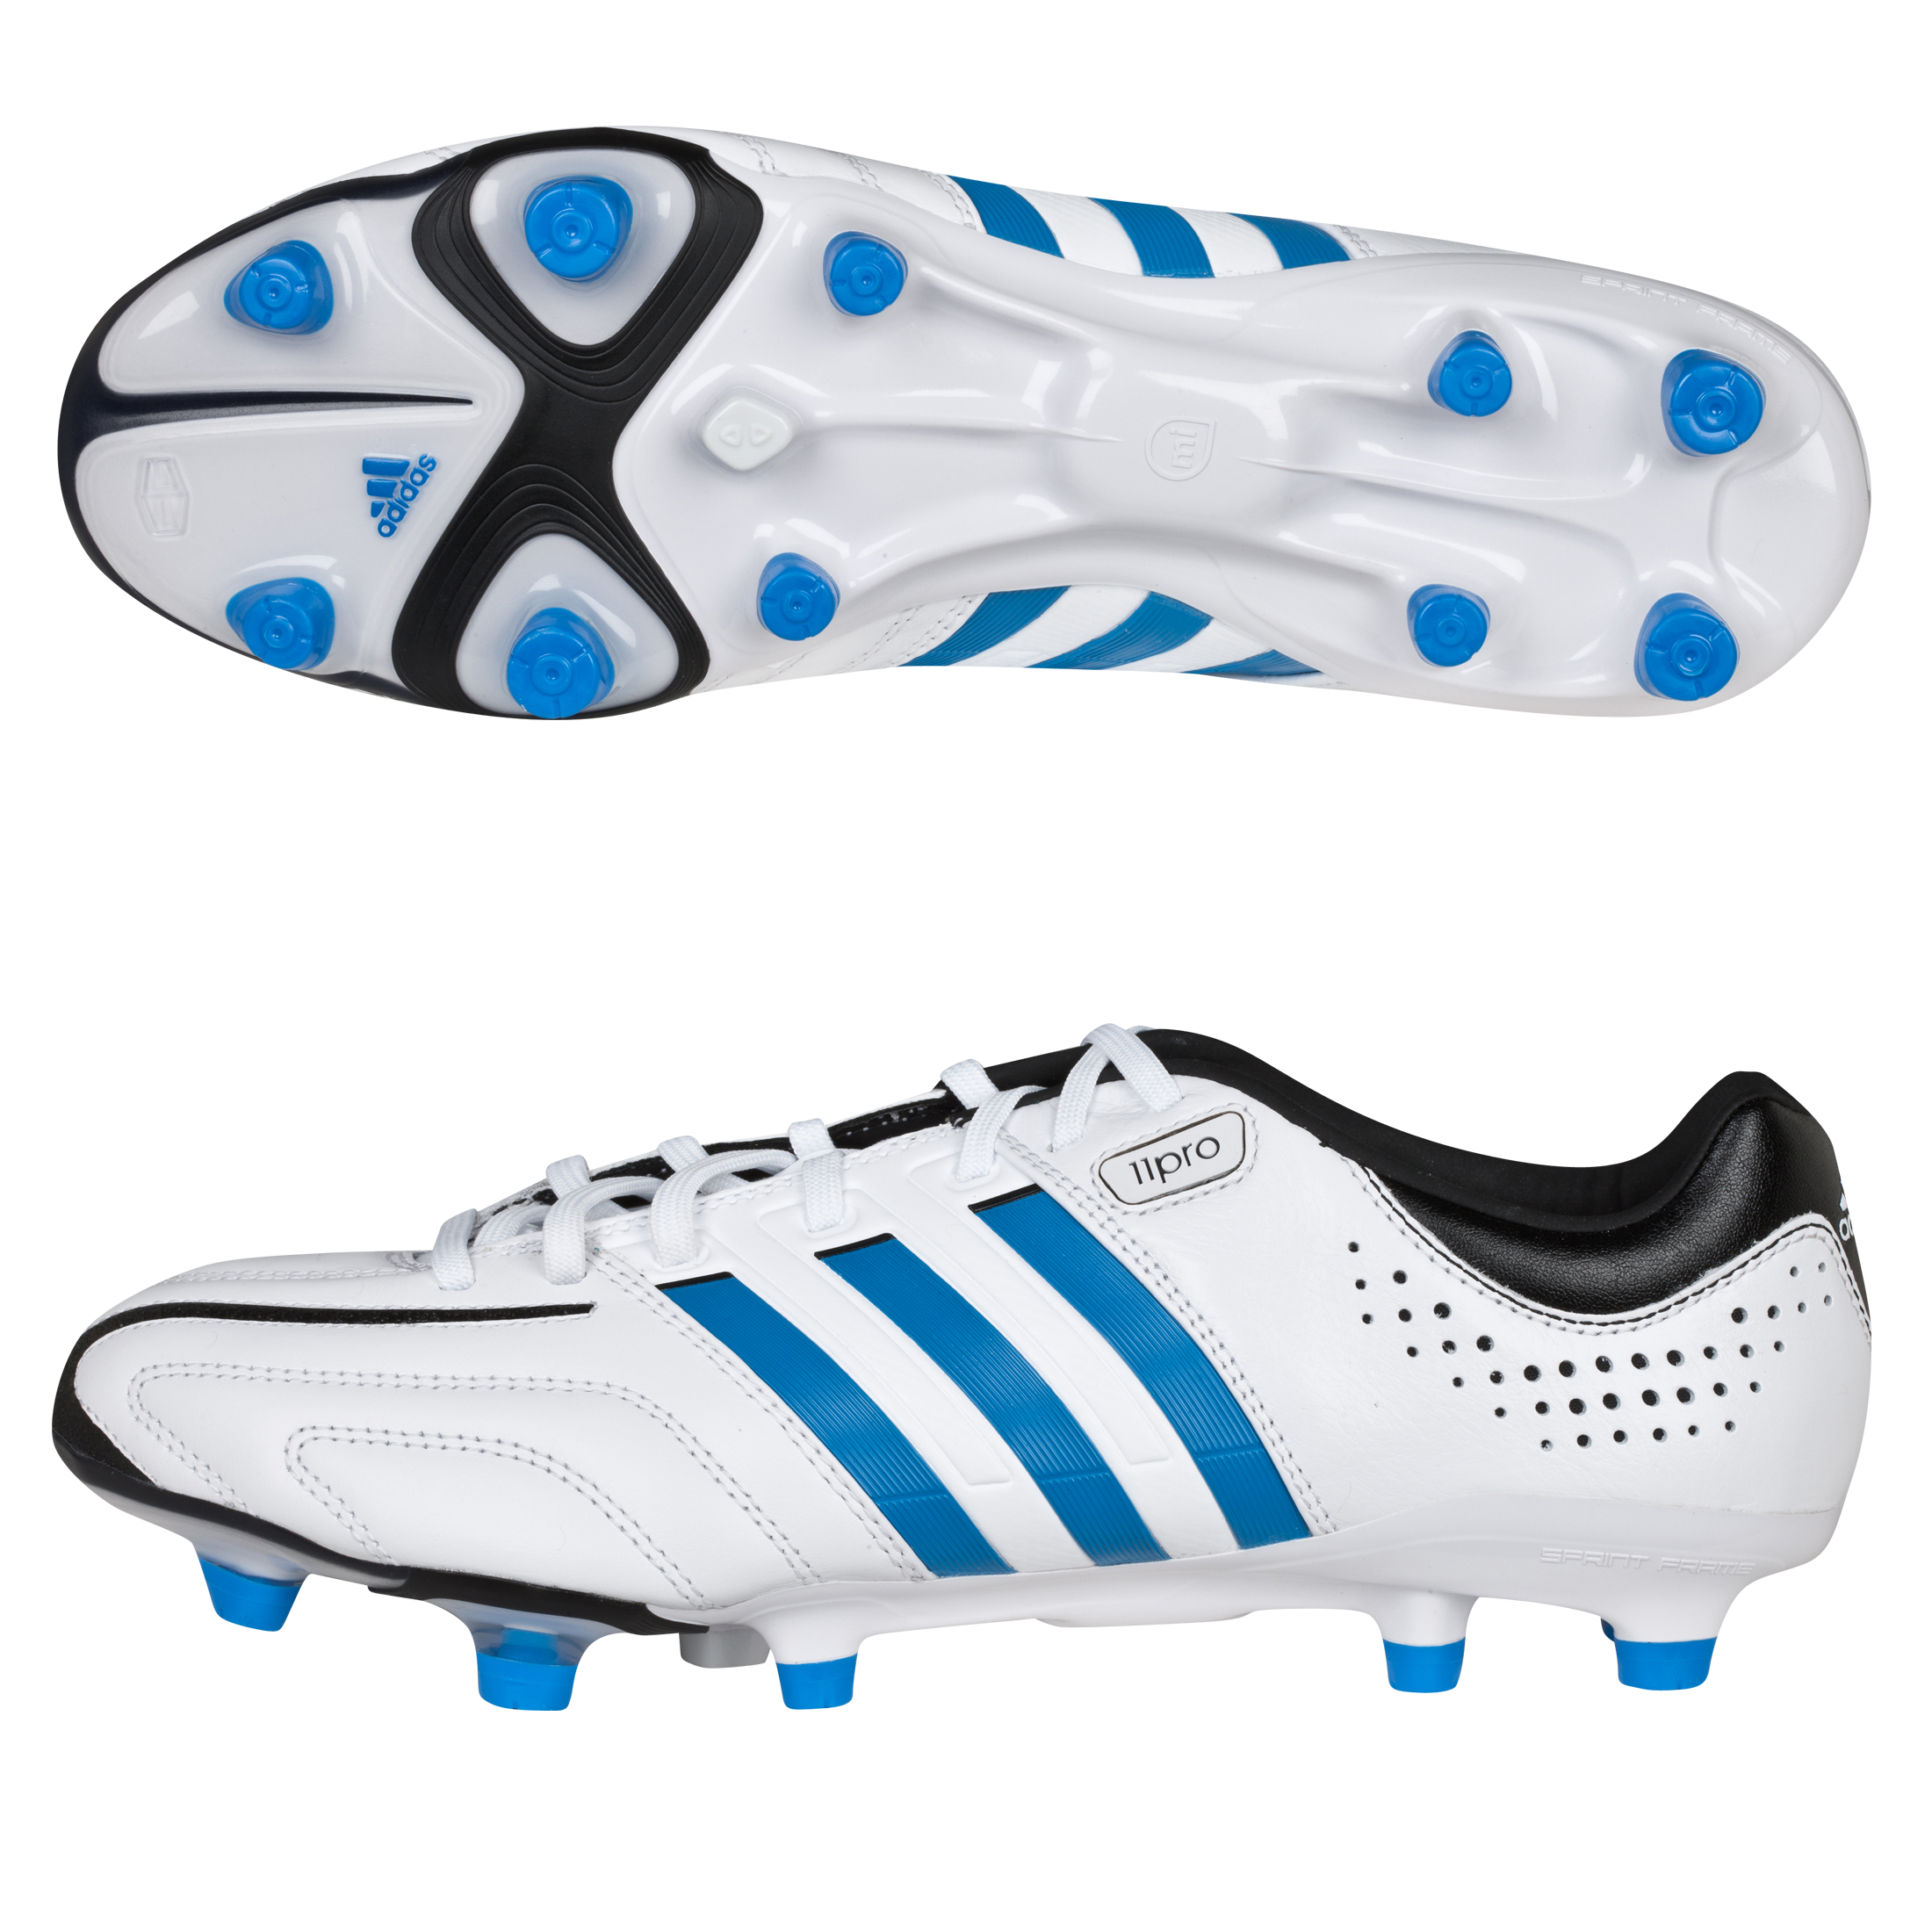 Adidas Adipure 11Pro TRX Football Boots - Running White/Bright Blue/Black